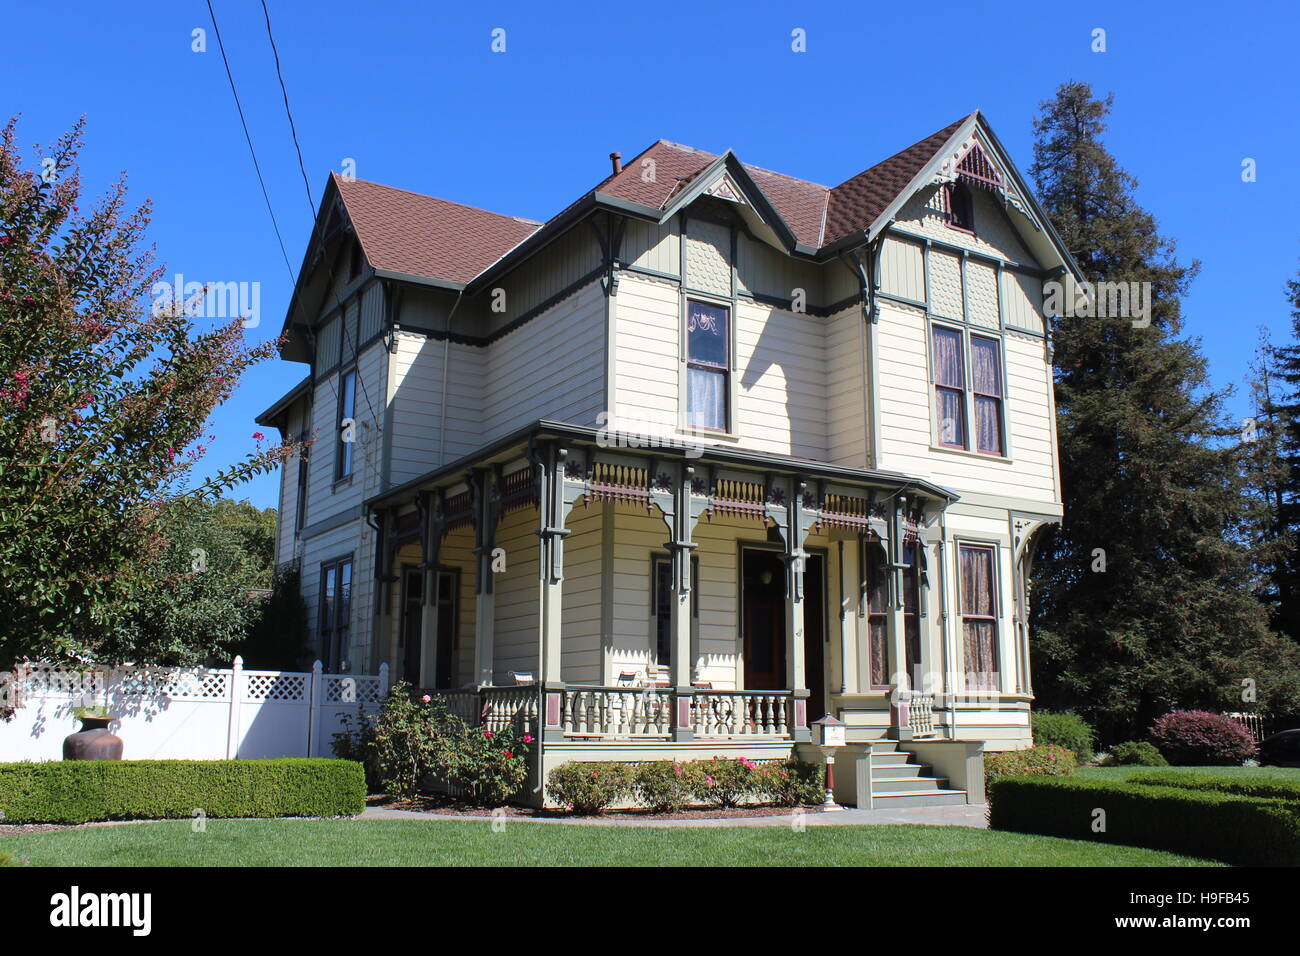 Eastlake Stick style House, Cherry Street, Santa Rosa, California - Stock Image